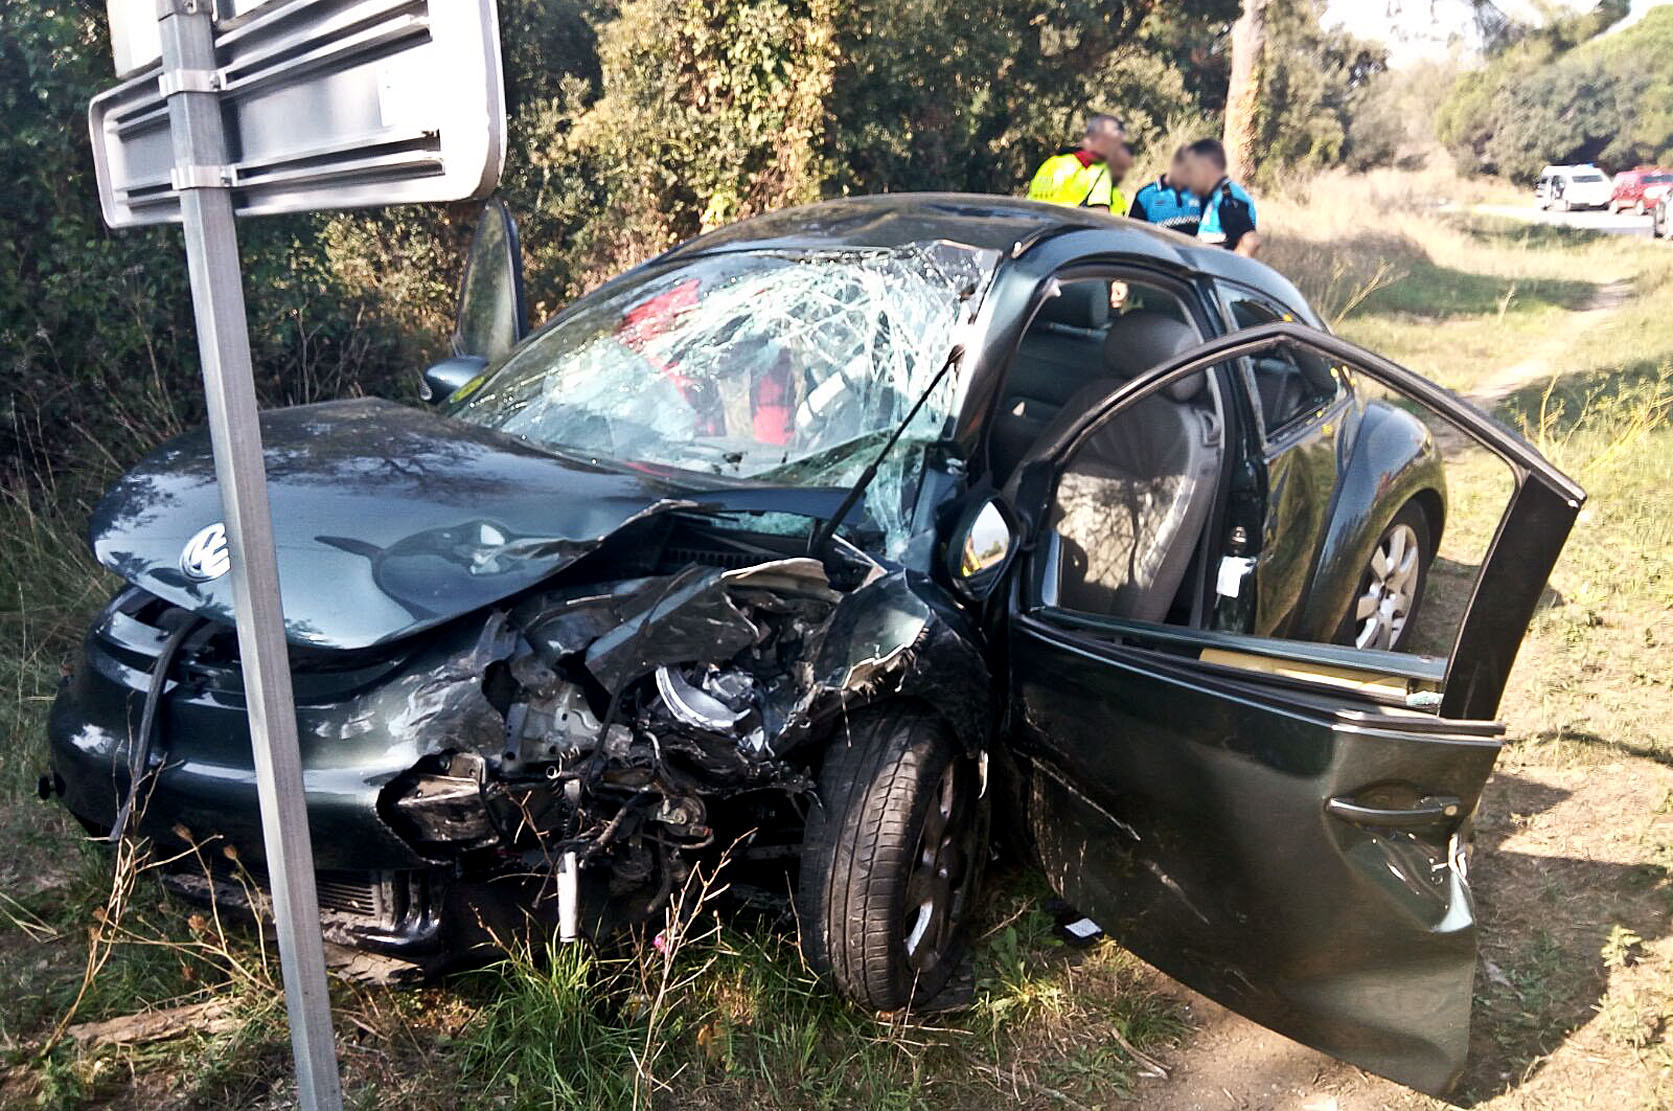 El vehicle accidentat que conduïa la víctima mortal